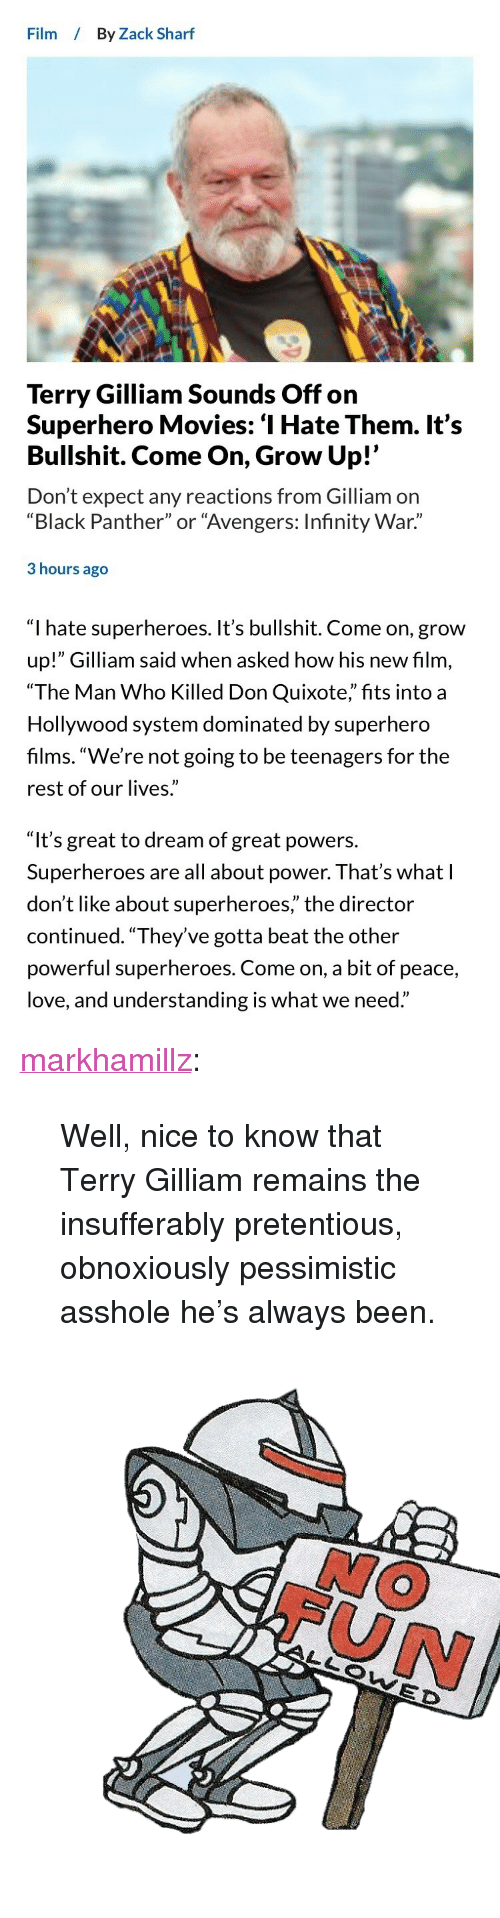 "Love, Movies, and Pretentious: Film By Zack Sharf  Terry Gilliam Sounds Off on  Superhero Movies: '1 Hate Them. It's  Bullshit. Come On, Grow Up!'  Don't expect any reactions from Gilliam on  ""Black Panther"" or ""Avengers: Infinity War.""  3 hours ago  0)   ""I hate superheroes. It's bullshit. Come on, grow  up!"" Gilliam said when asked how his new film,  ""The Man Who Killed Don Quixote,"" fits into a  Hollywood system dominated by superhero  films. ""We're not going to be teenagers for the  rest of our lives.""   ""It's great to dream of great powers.  Superheroes are all about power. That's what l  don't like about superheroes, the director  continued. ""They've gotta beat the other  powerful superheroes. Come on, a bit of peace,  love, and understanding is what we need."" <p><a href=""http://markhamillz.tumblr.com/post/174634991196/well-nice-to-know-that-terry-gilliam-remains-the"" class=""tumblr_blog"">markhamillz</a>:</p>  <blockquote><p>Well, nice to know that Terry Gilliam remains the insufferably pretentious, obnoxiously pessimistic asshole he's always been.</p></blockquote>  <figure class=""tmblr-full"" data-orig-height=""512"" data-orig-width=""512""><img src=""https://78.media.tumblr.com/320ae0d7ccc6aa4f7d18fb72b230d011/tumblr_inline_p9xcm2CmFd1rw09tq_500.png"" data-orig-height=""512"" data-orig-width=""512""/></figure>"